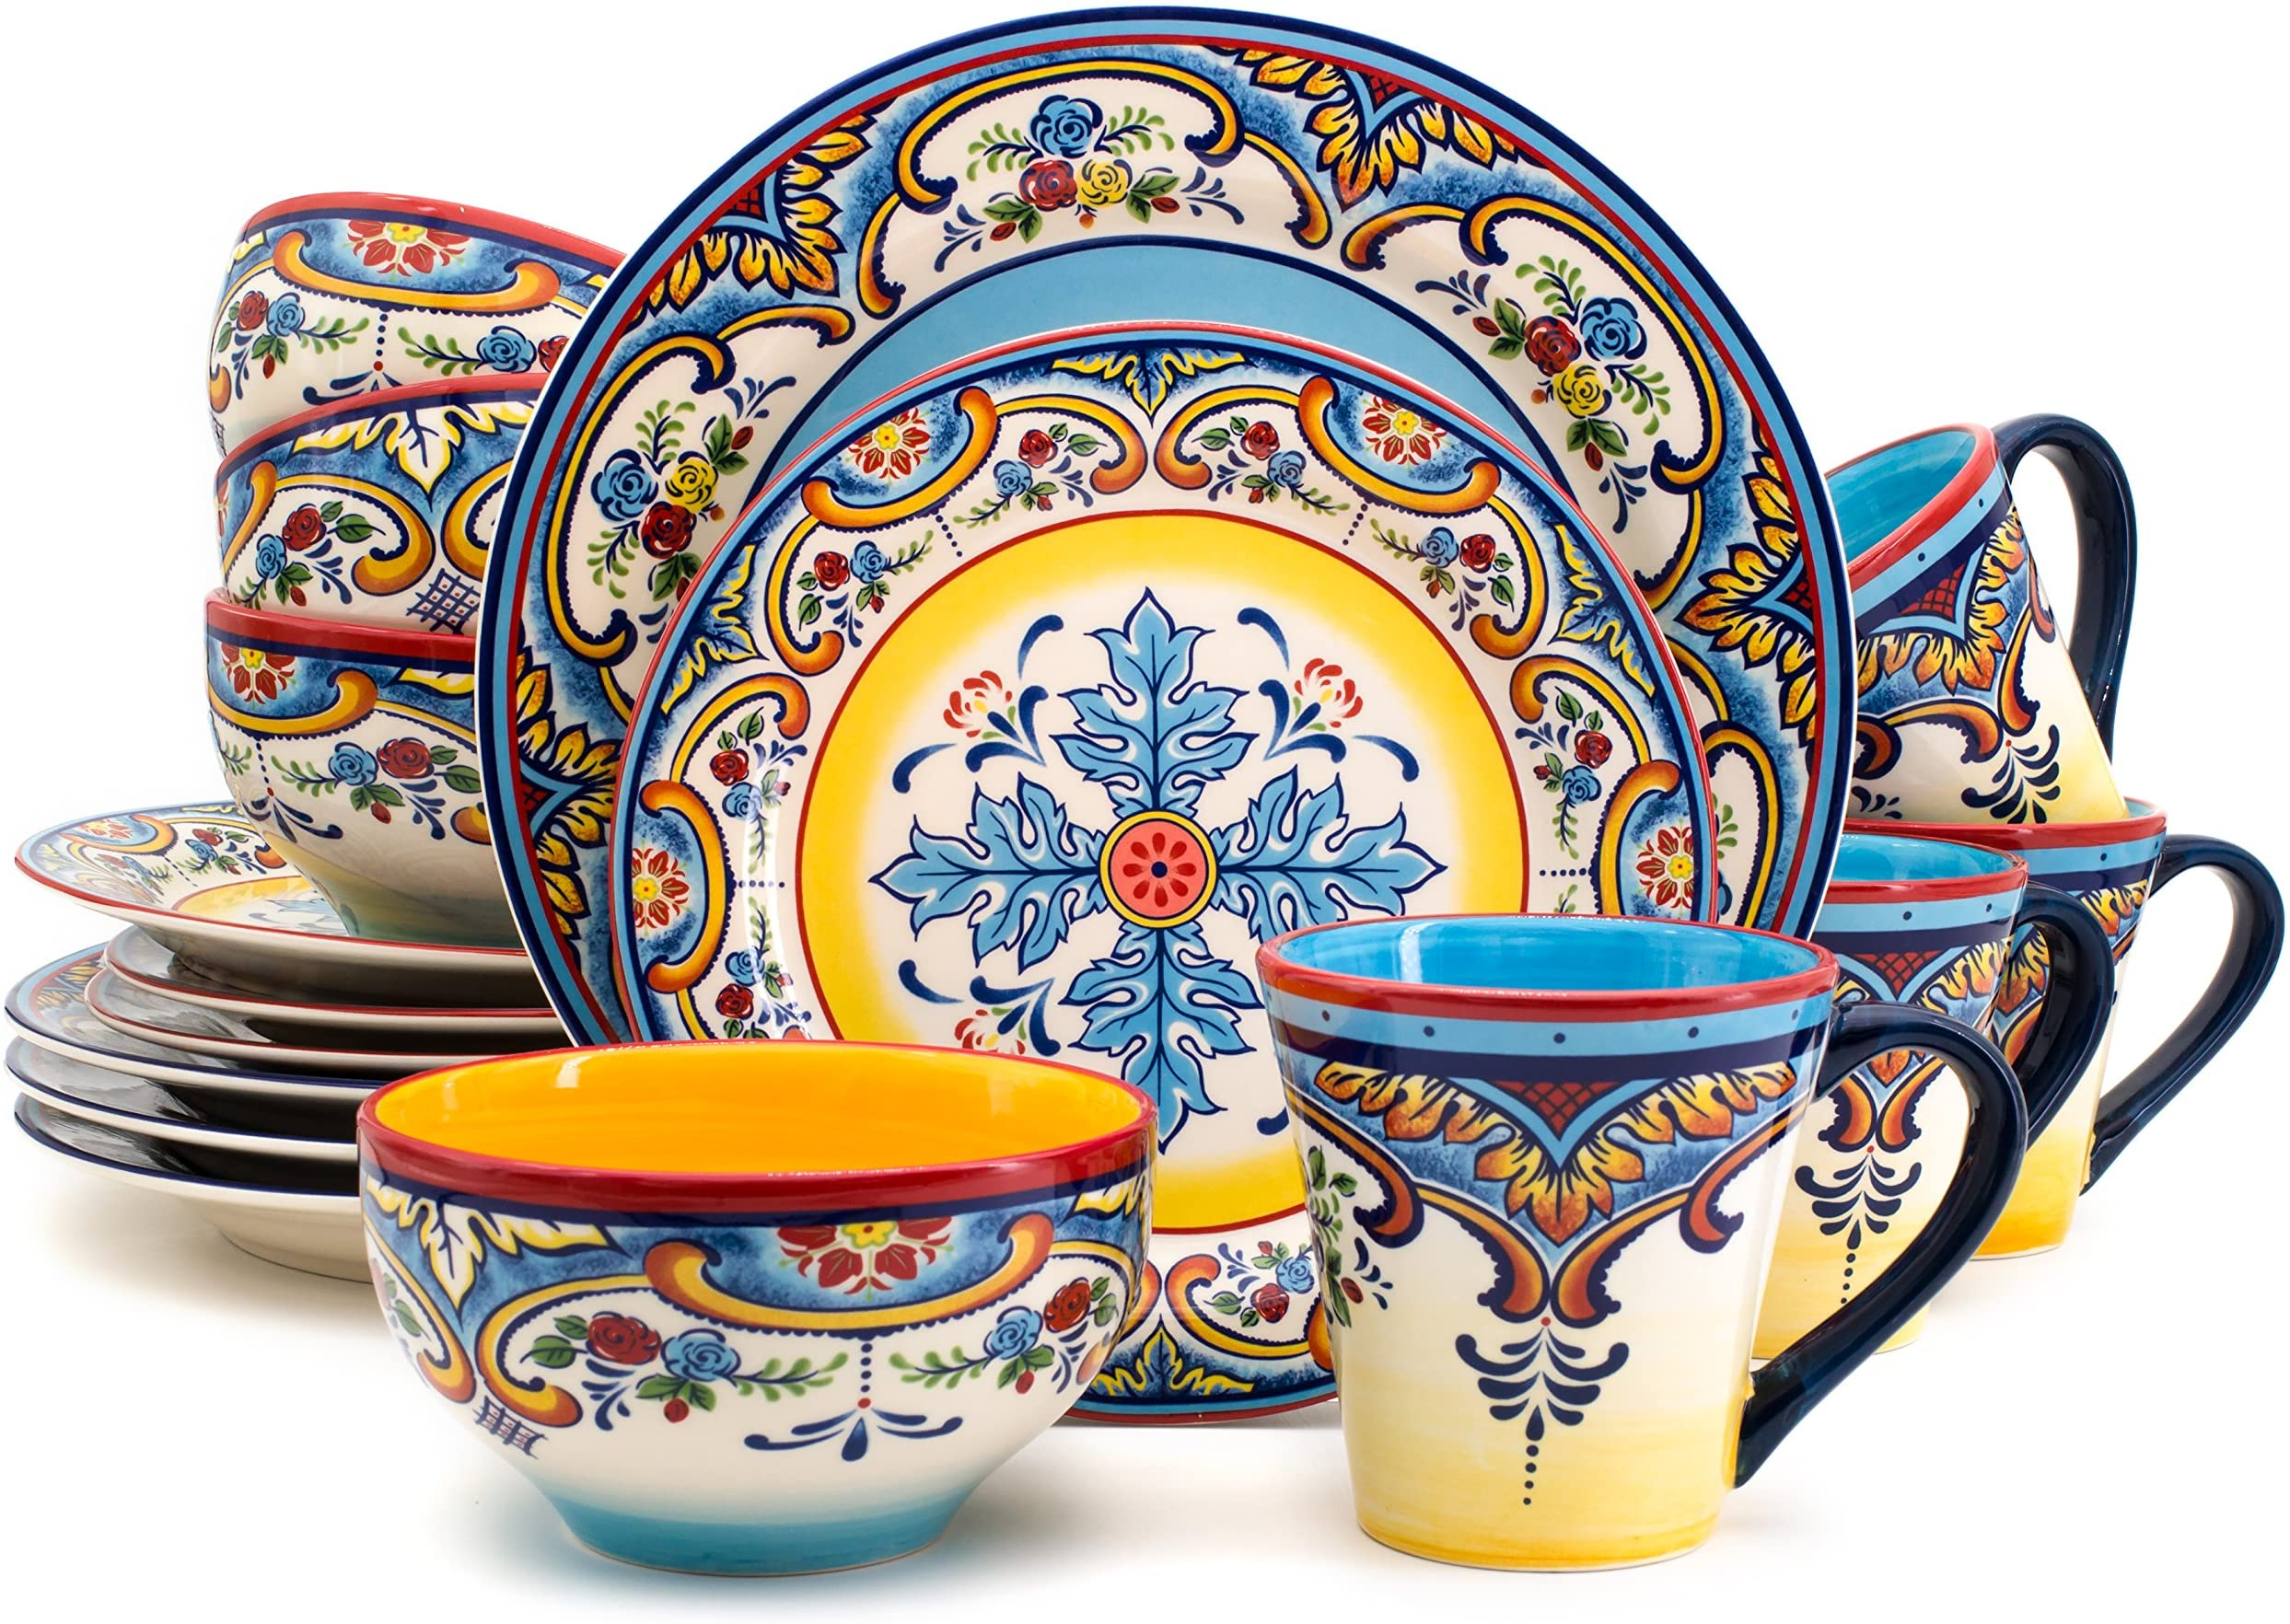 Match to our other floral products New Home Yellow  Flowers Beautiful Floral  Dinner Bowl Pattern 6 Birthday /& More!